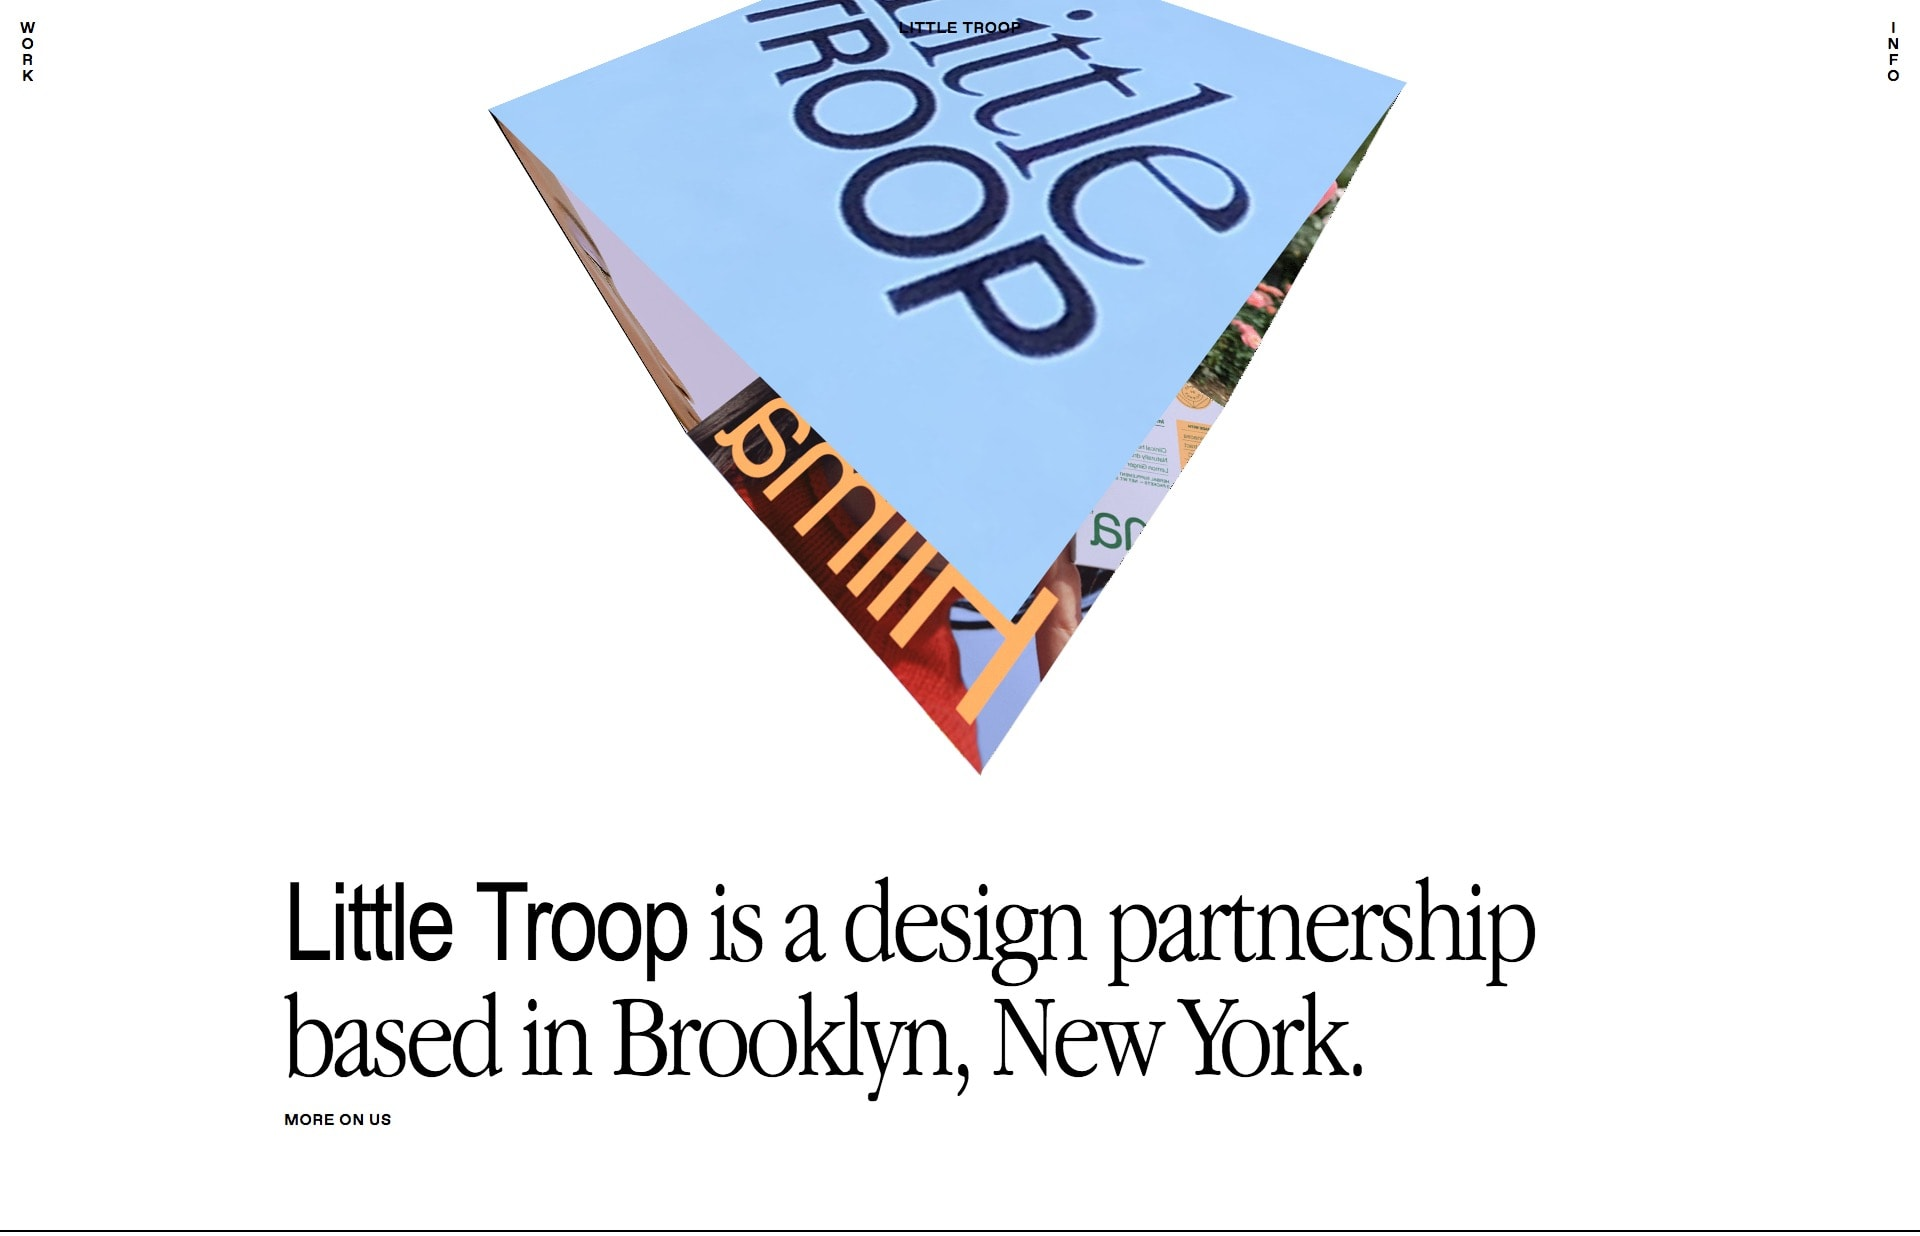 Screenshot of the website Little Troop, featured on The Gallery, a curated collection of minimal websites